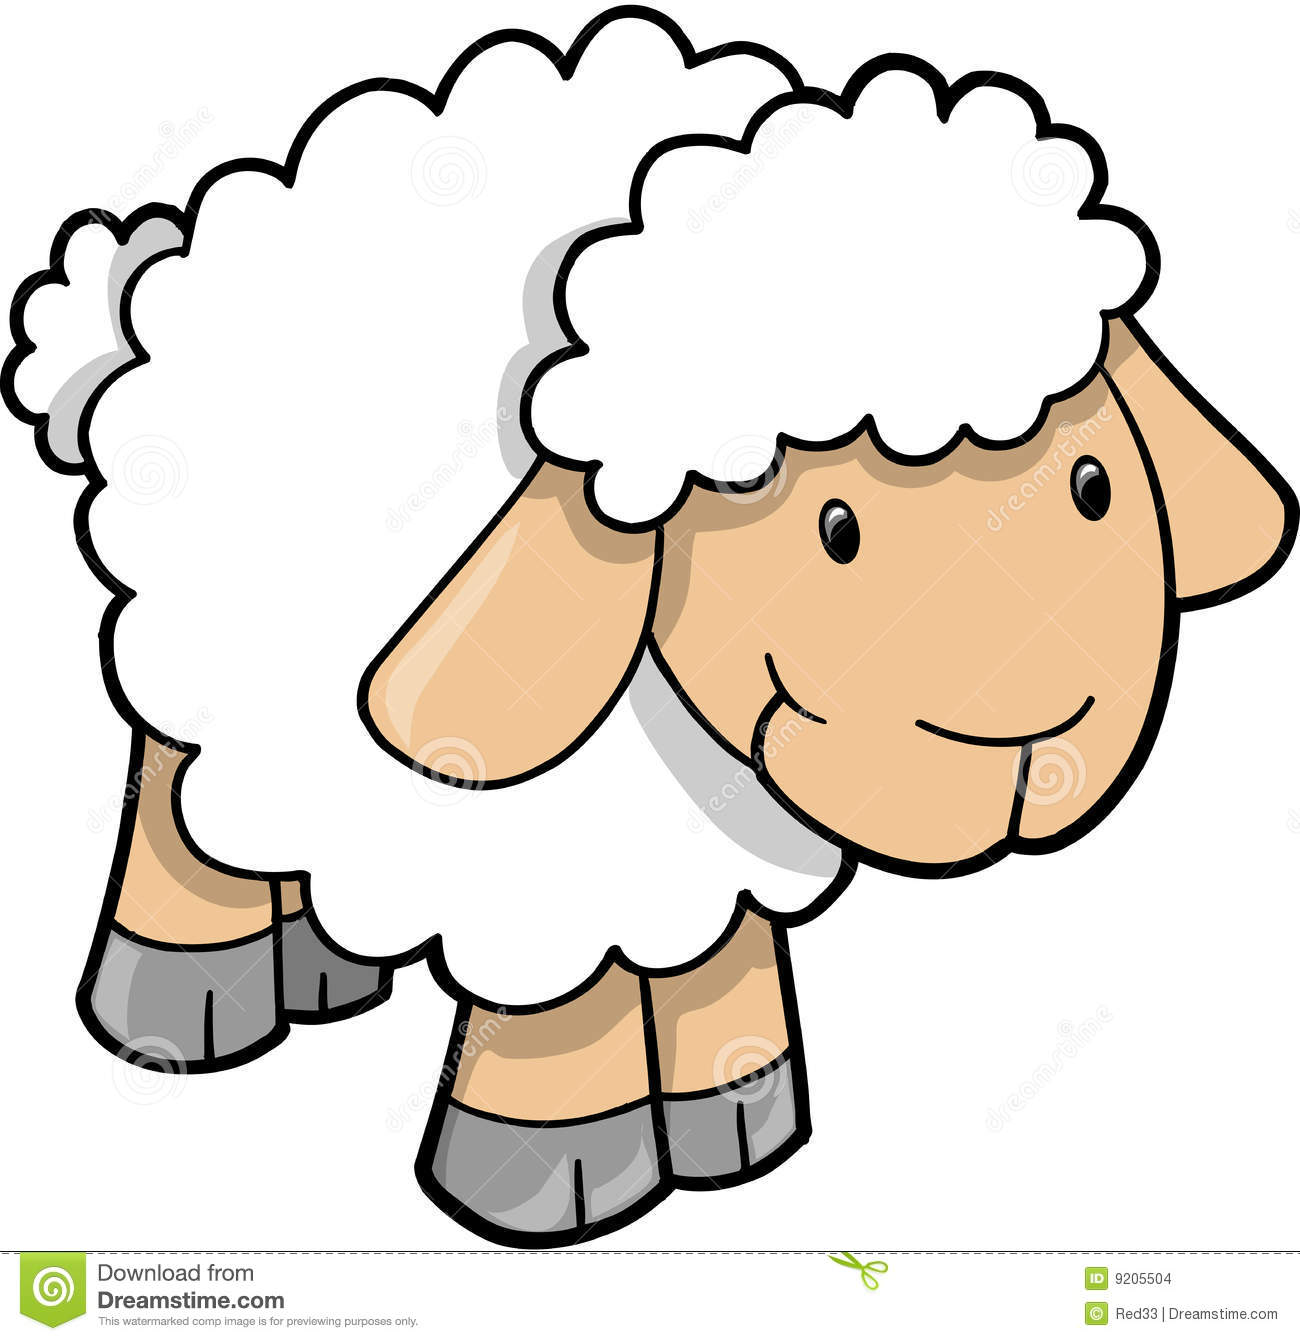 13 Sheep Clip Art Vector Graphics Images